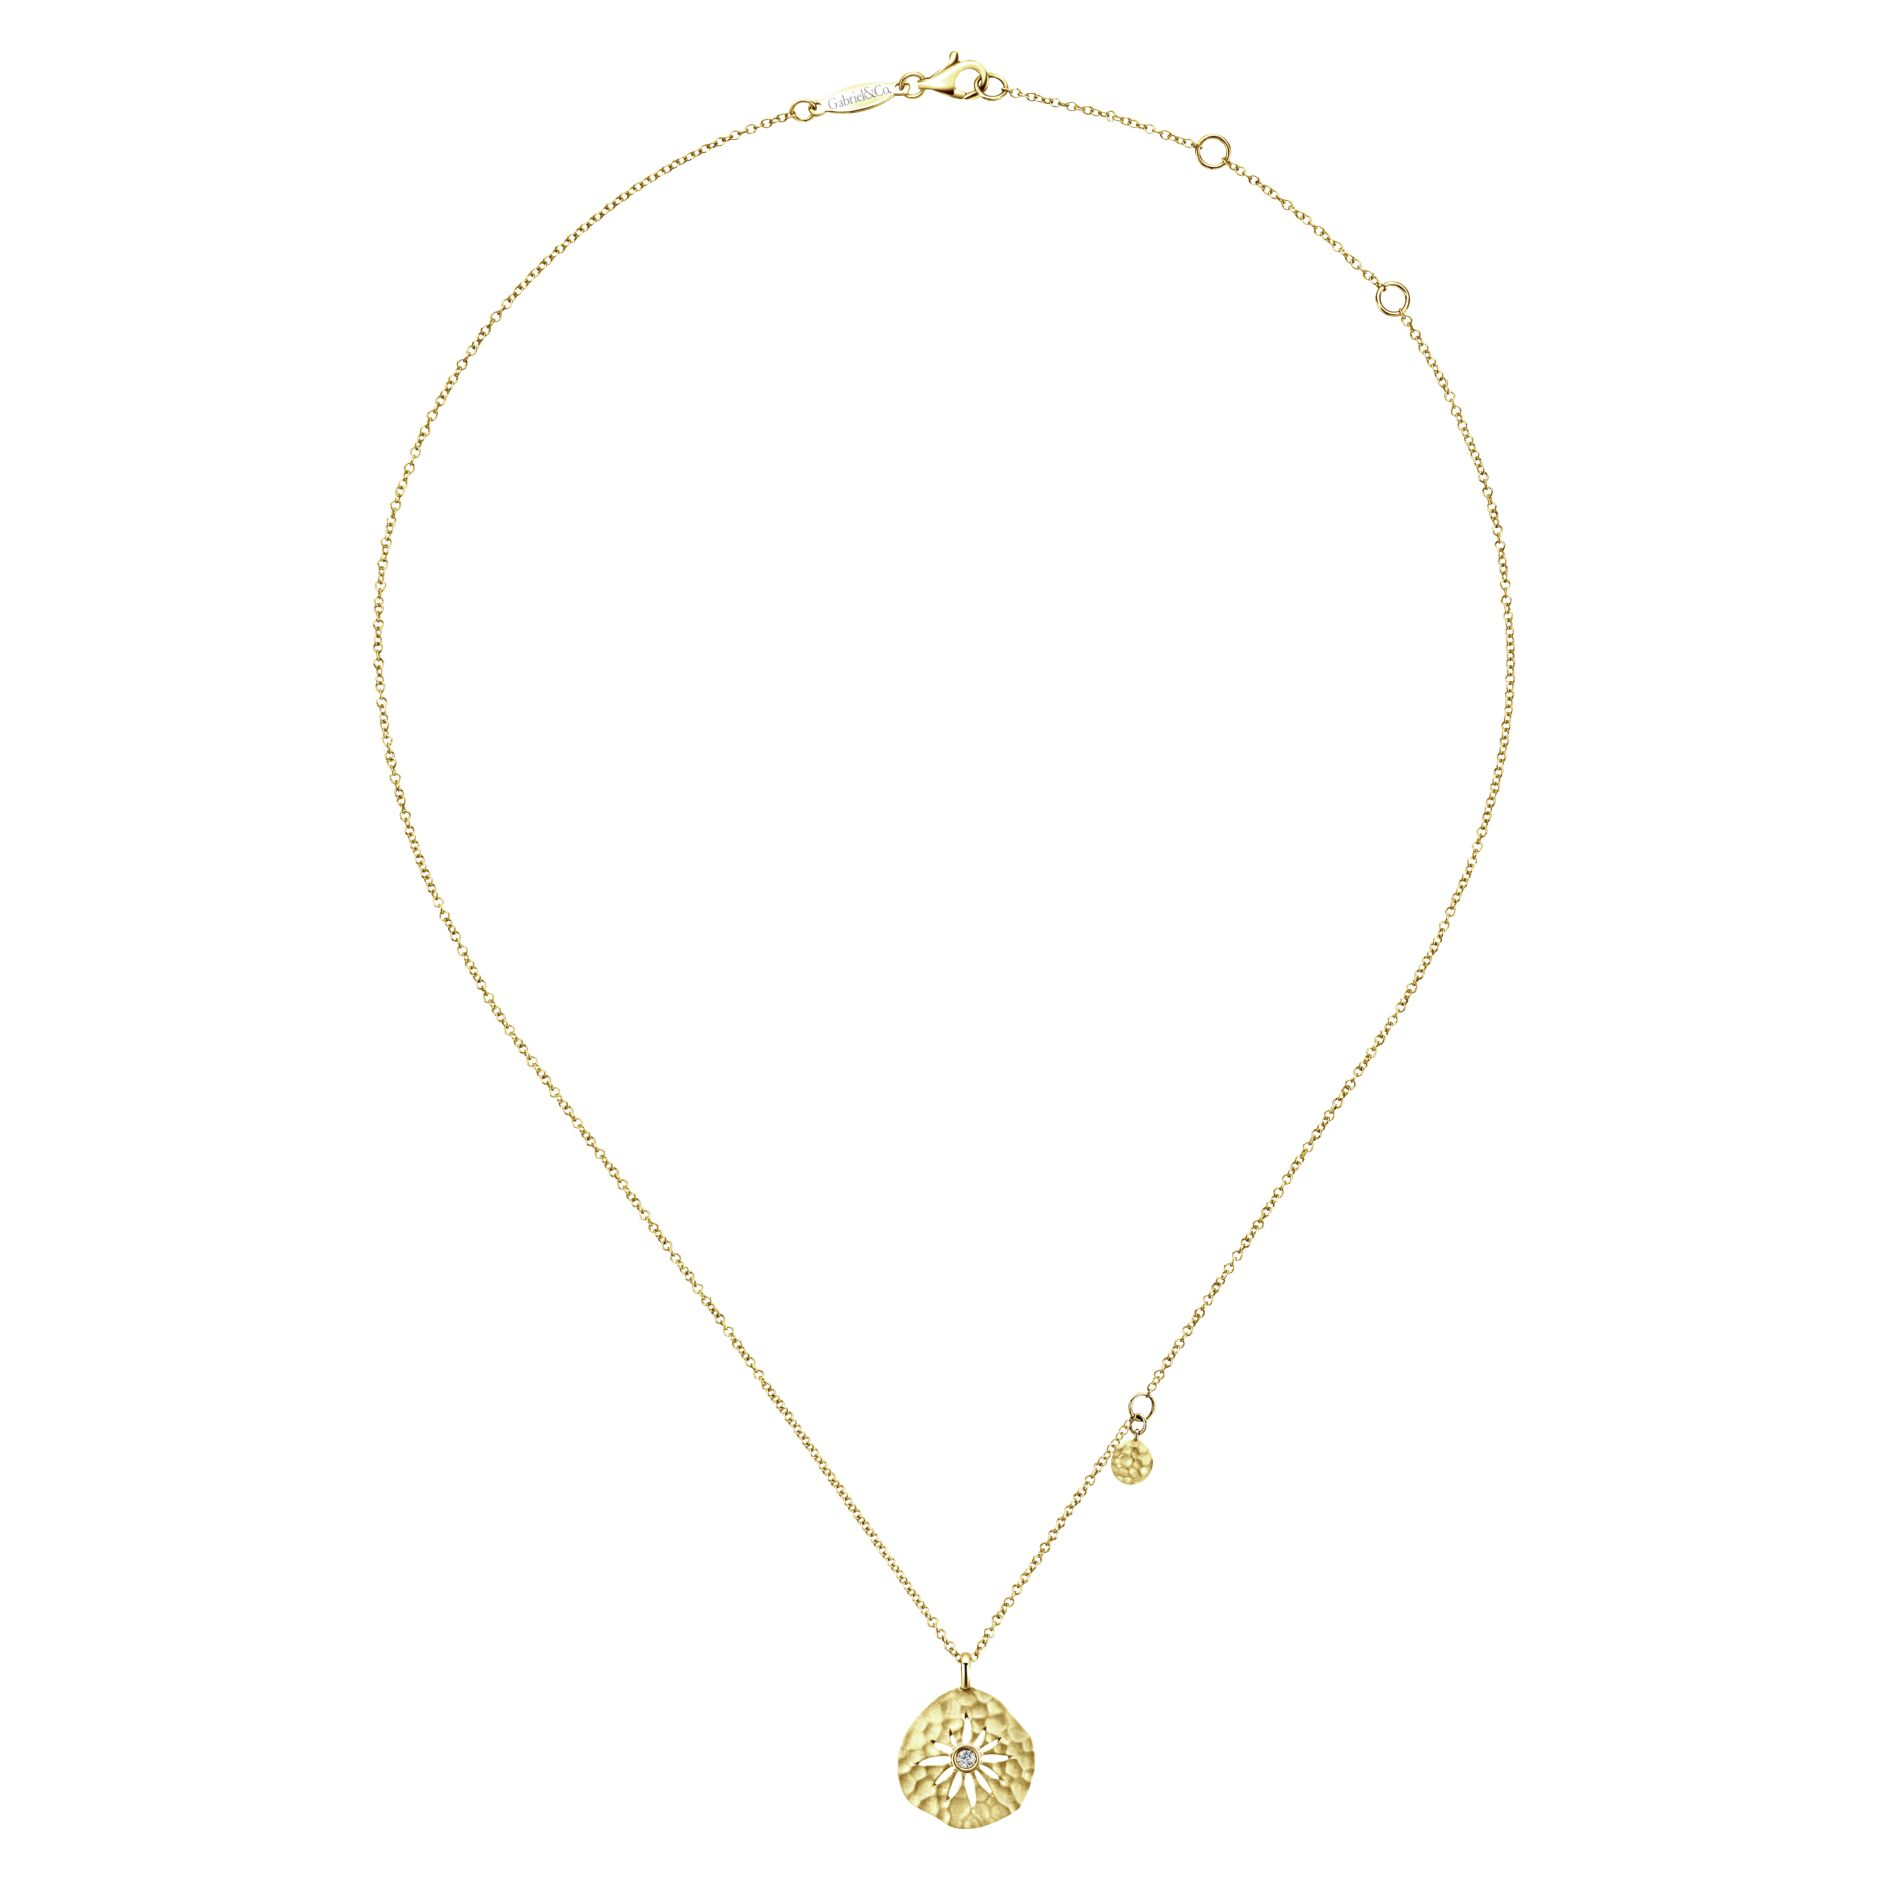 Necklaces - YELLOW GOLD FASHION DIAMOND NECKLACE - image 2